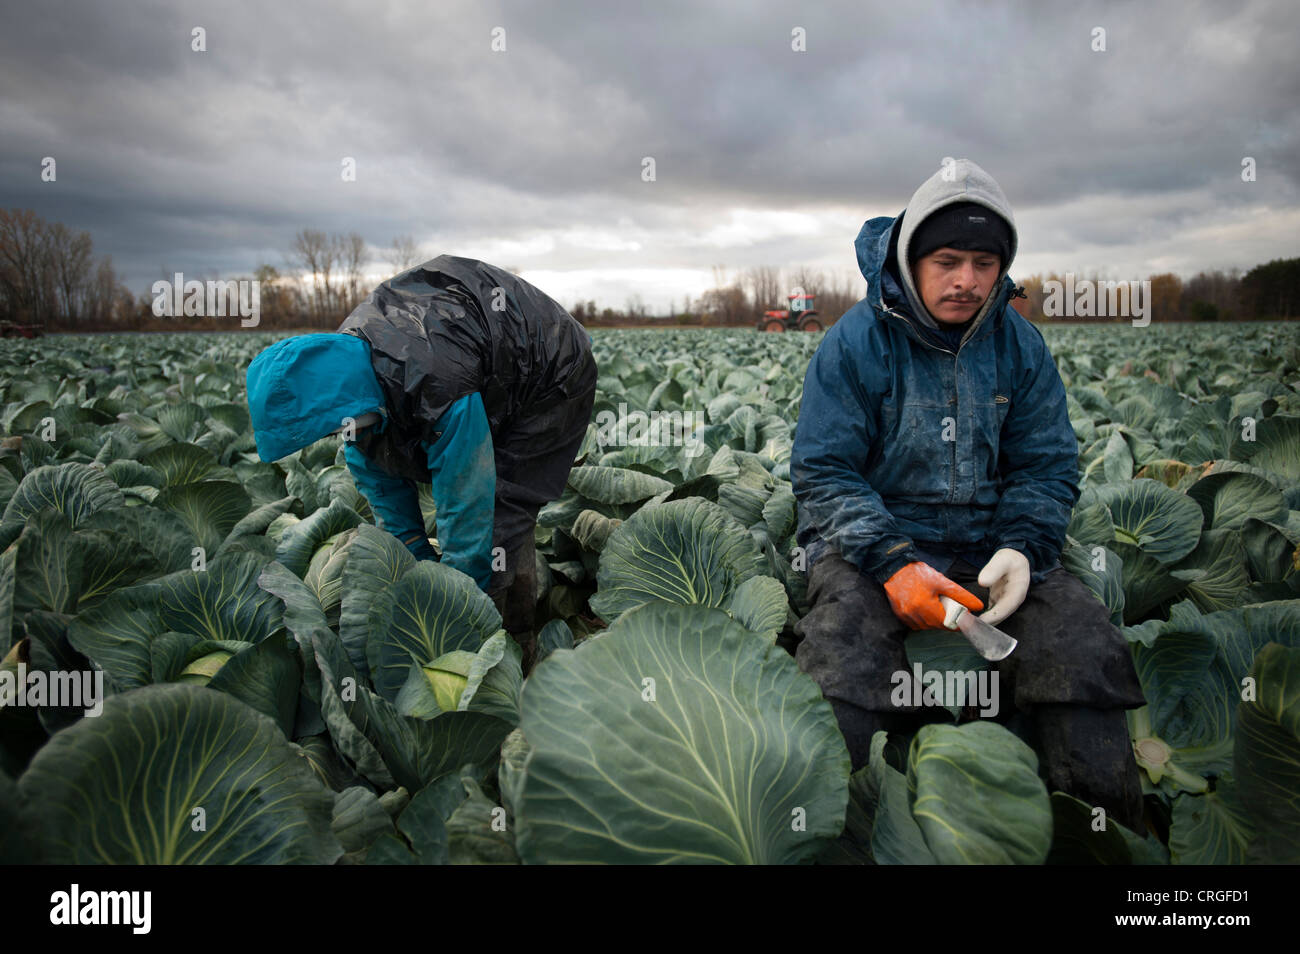 Mexican migrant farm workers in upstate New York, United States - Stock Image